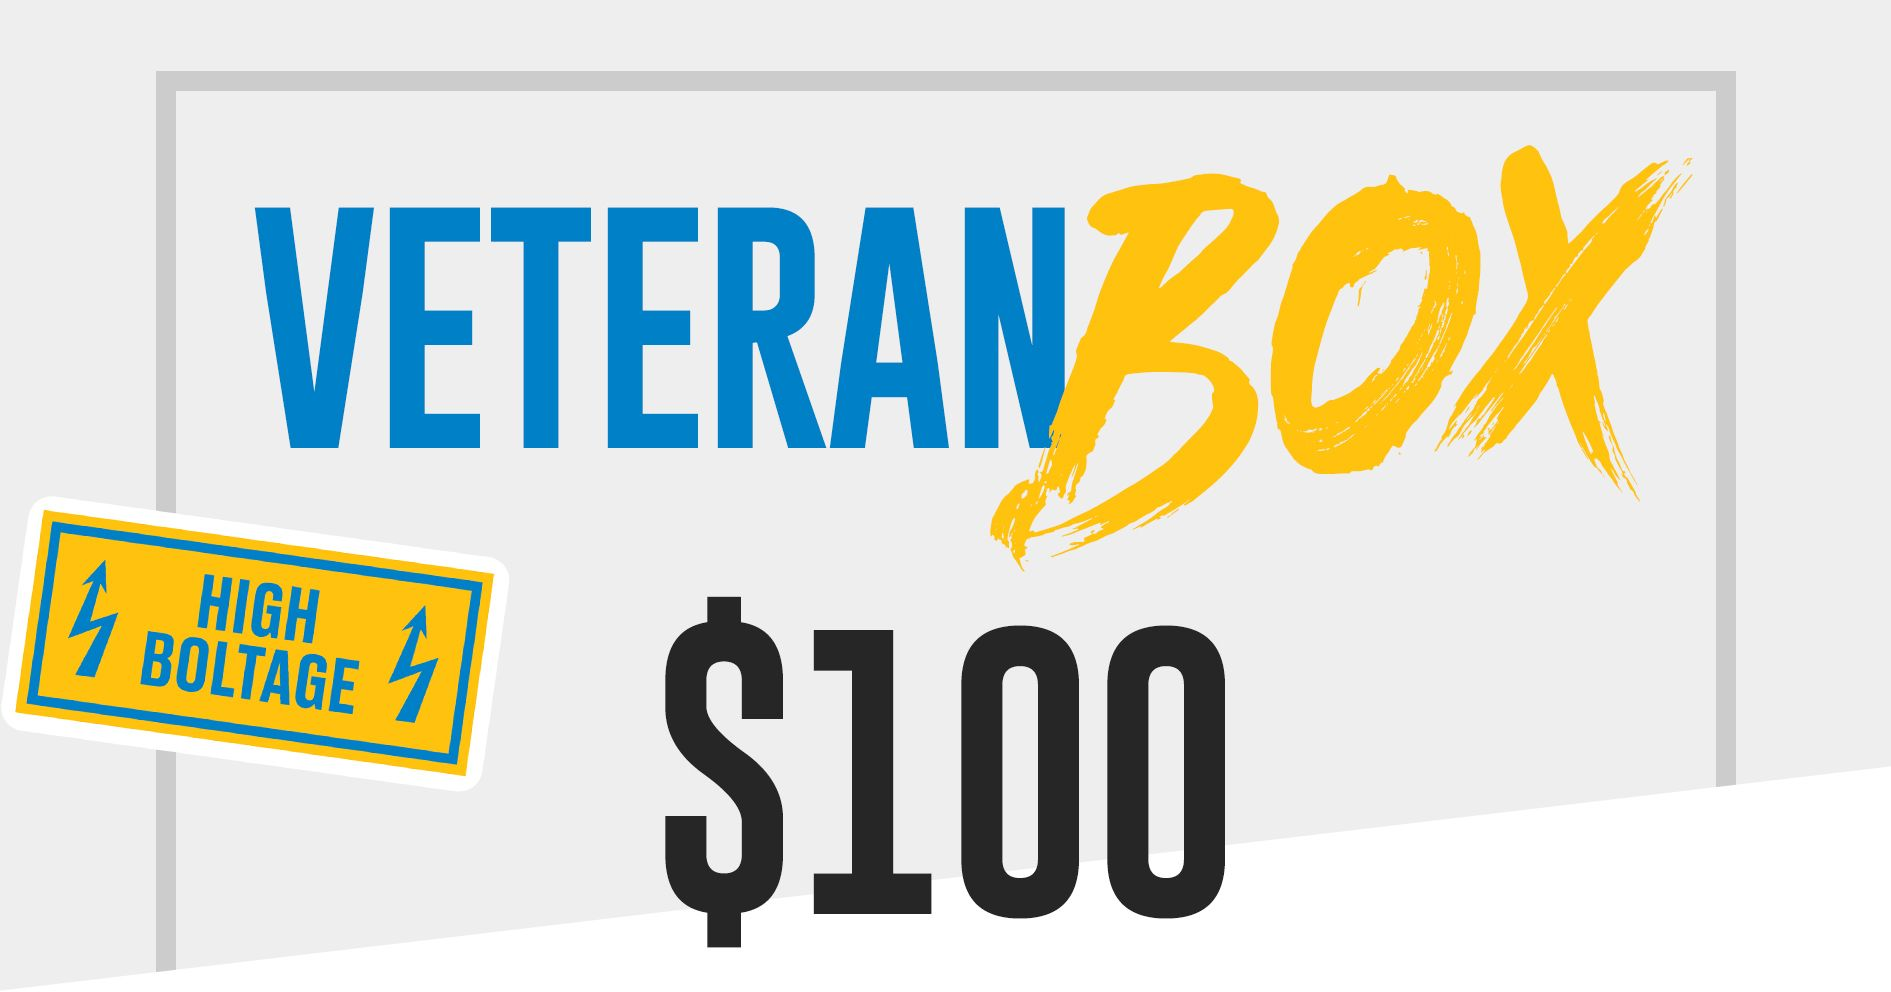 Veteran Box is Sold Out